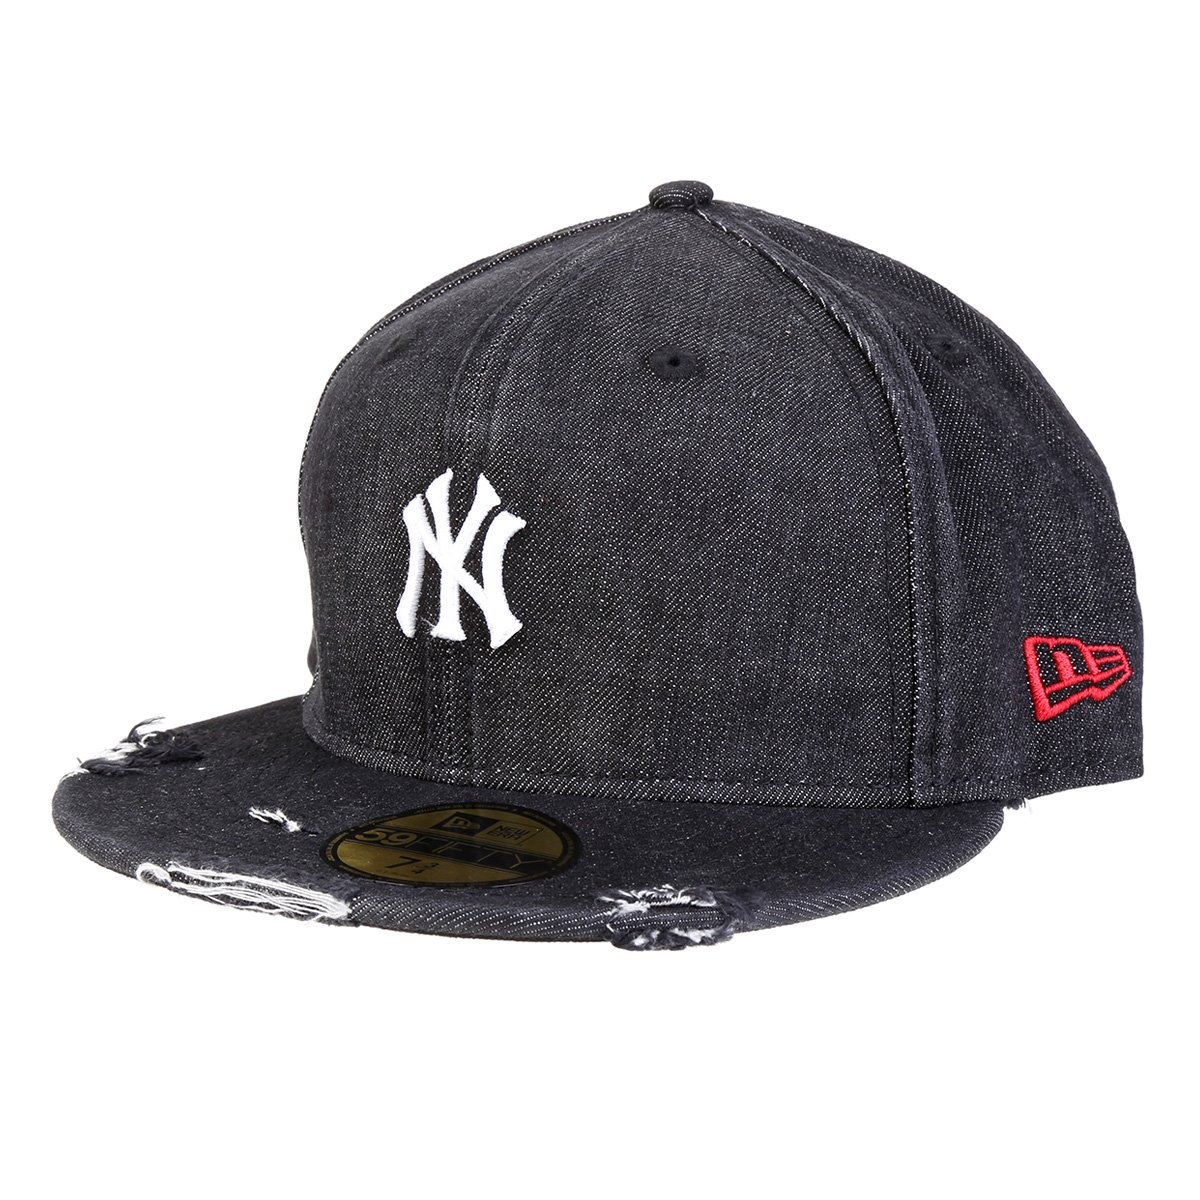 Boné New Era MLB New York Yankees Denin Logo Aba Reta